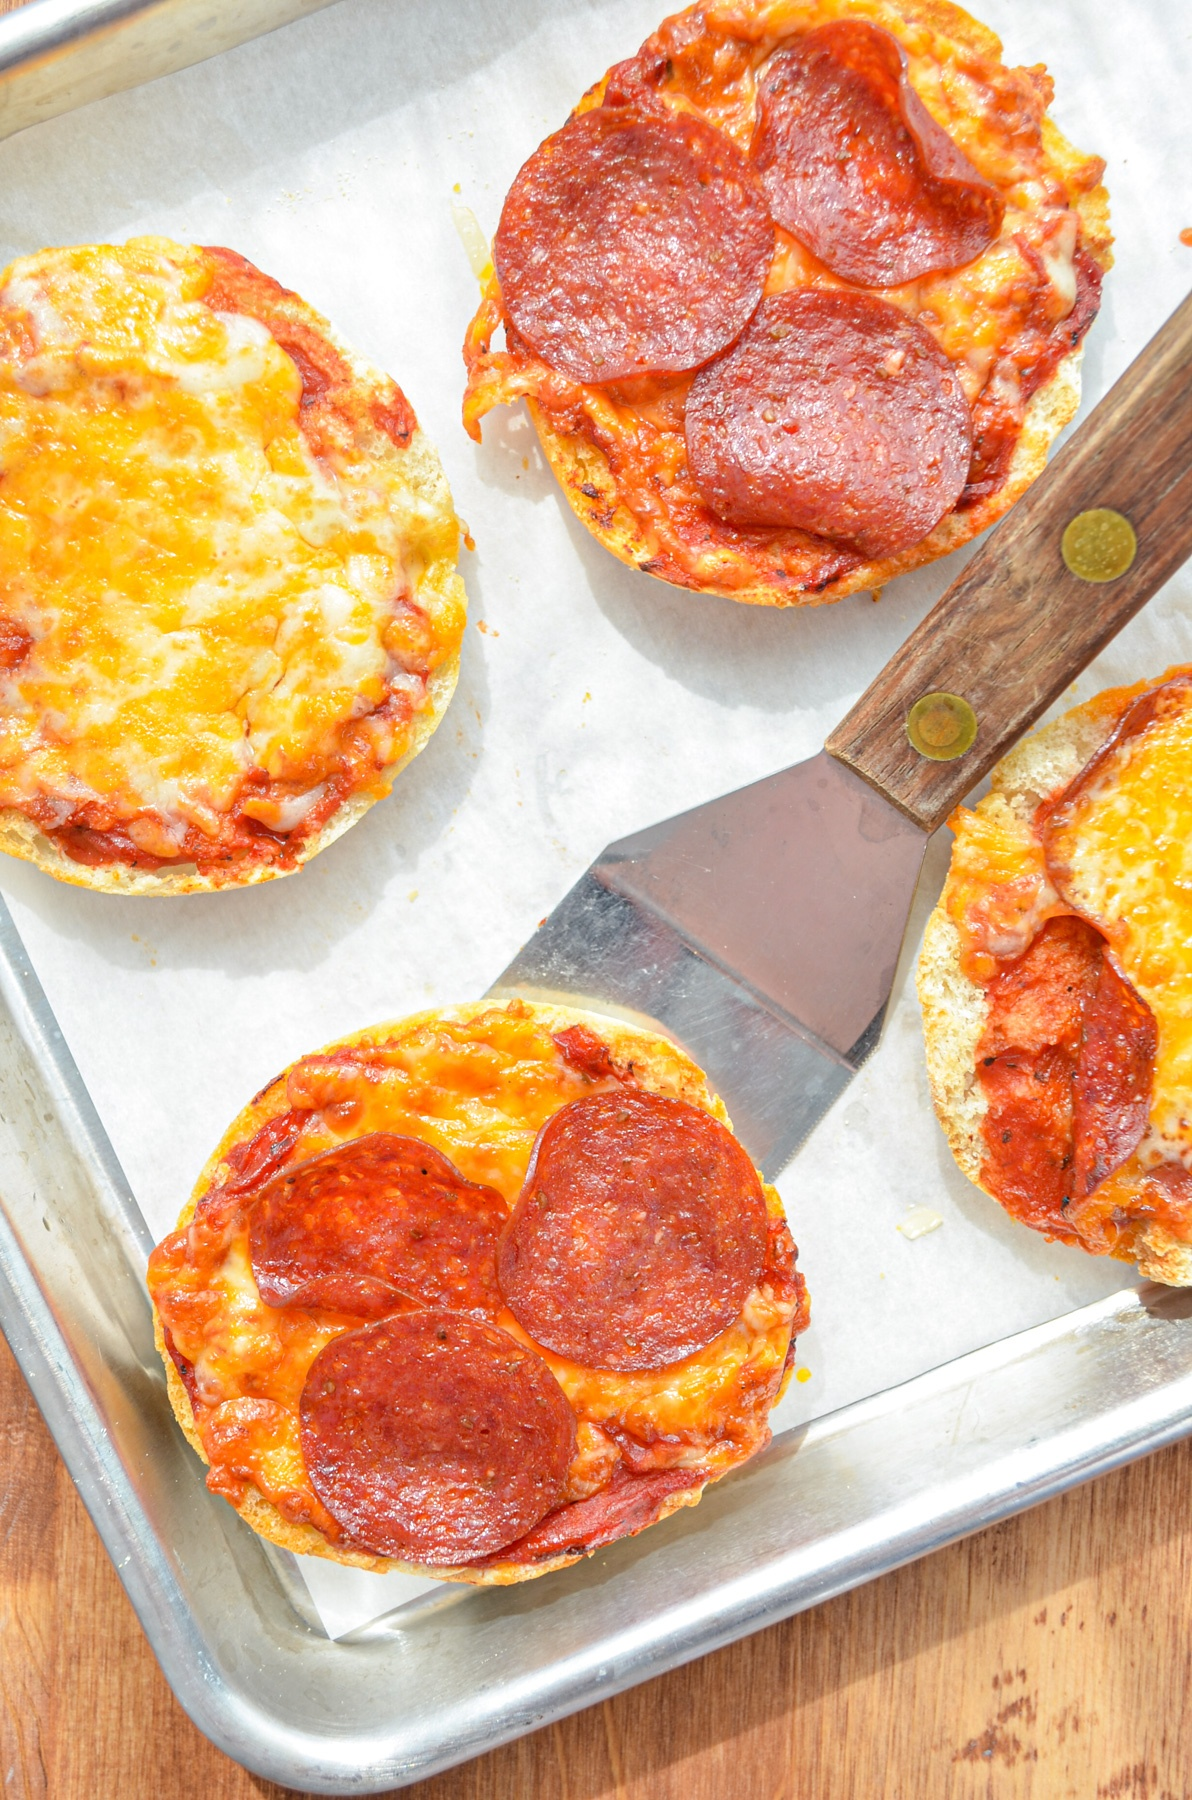 English muffin pizzas being lifted with a spatula.